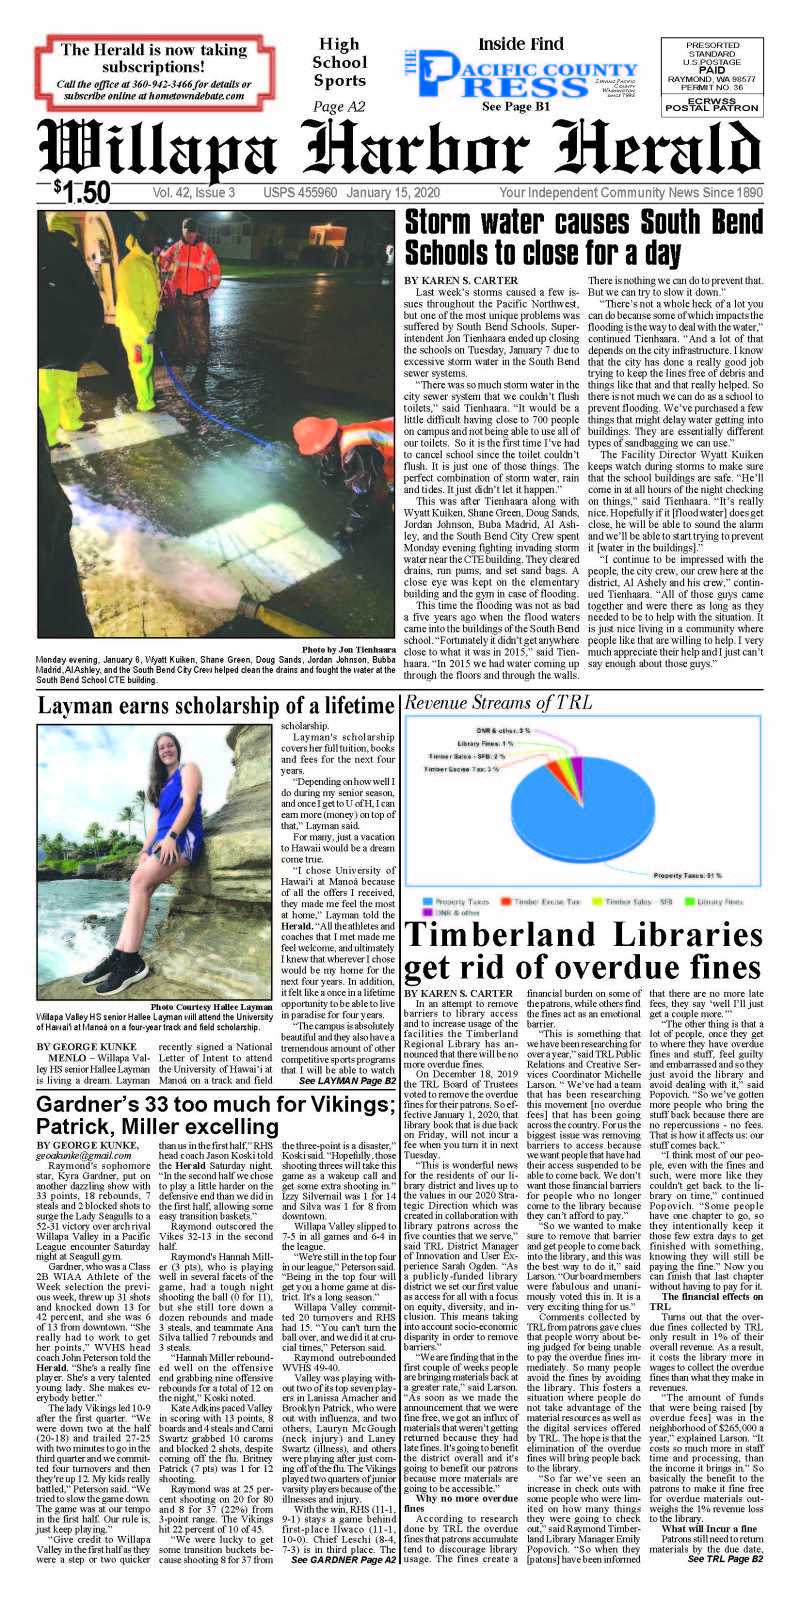 January 15, 2020 Willapa Harbor Herald and Pacific County Press